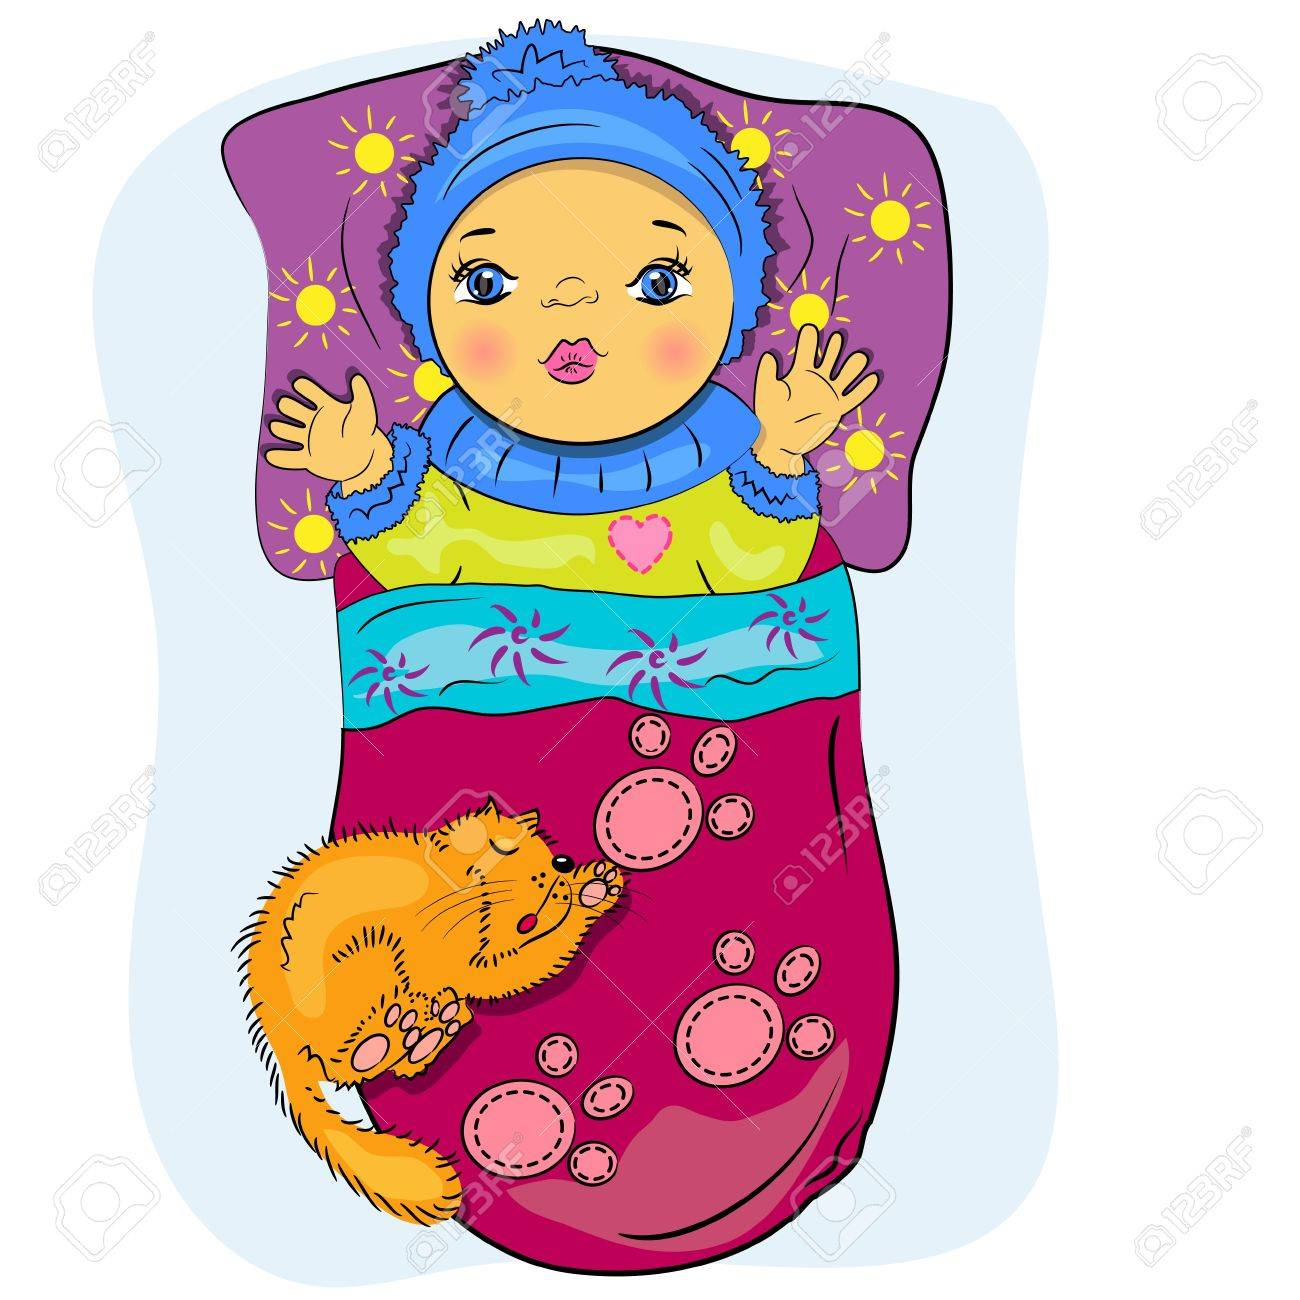 cartoon little baby in bed with pet  playing boy painting Stock Vector - 14233125